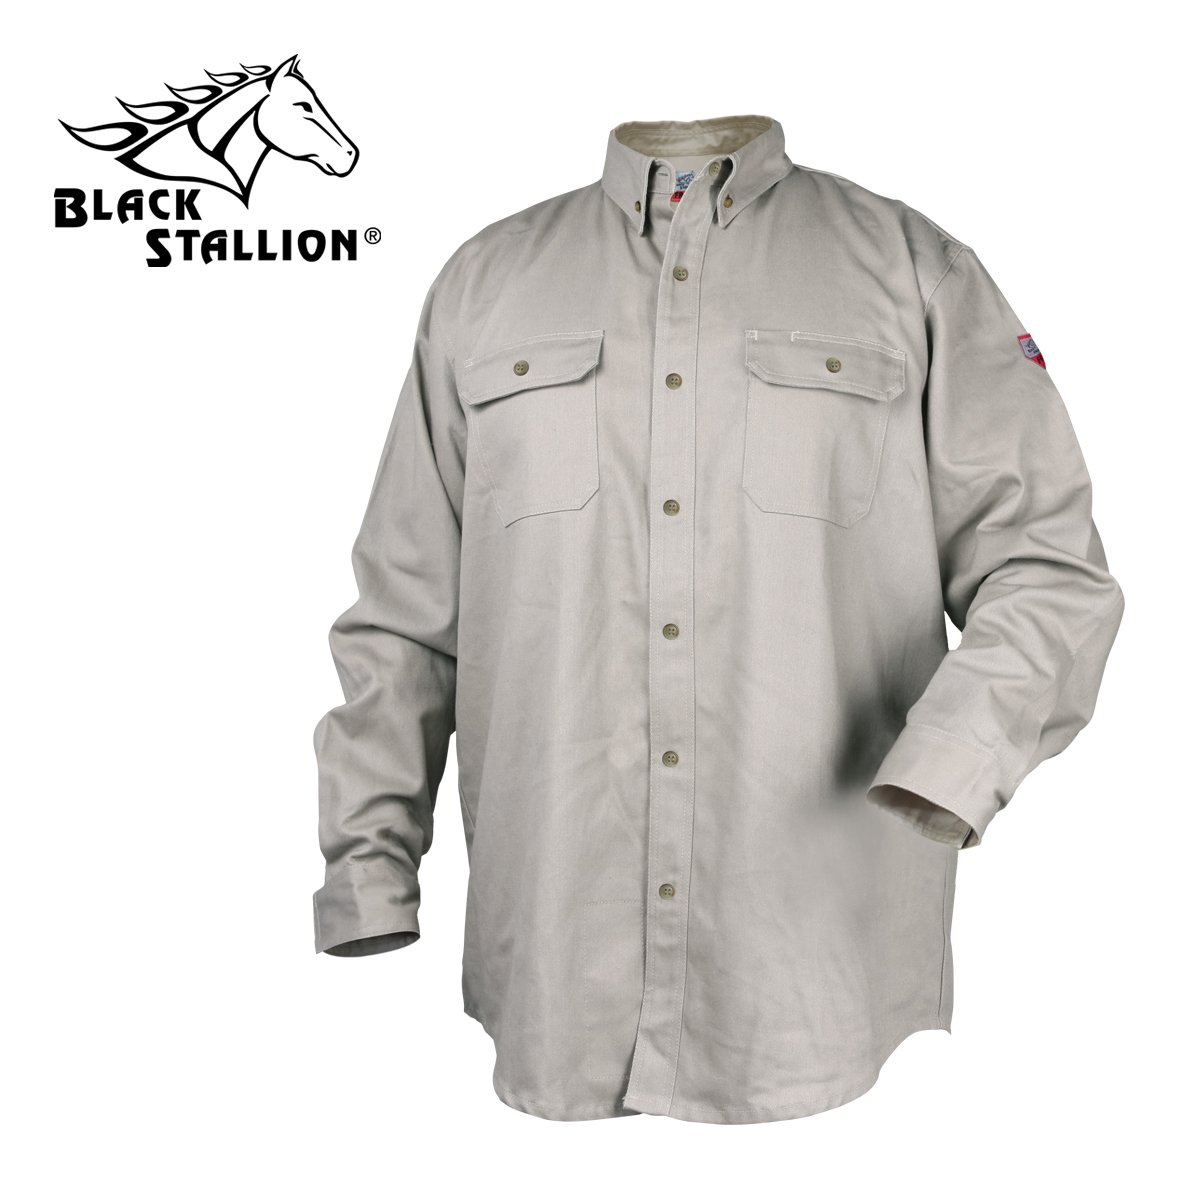 Black Stallion TruGuard 300 NFPA 2112 Flame-Resistant Cotton Work Shirt - LARGE